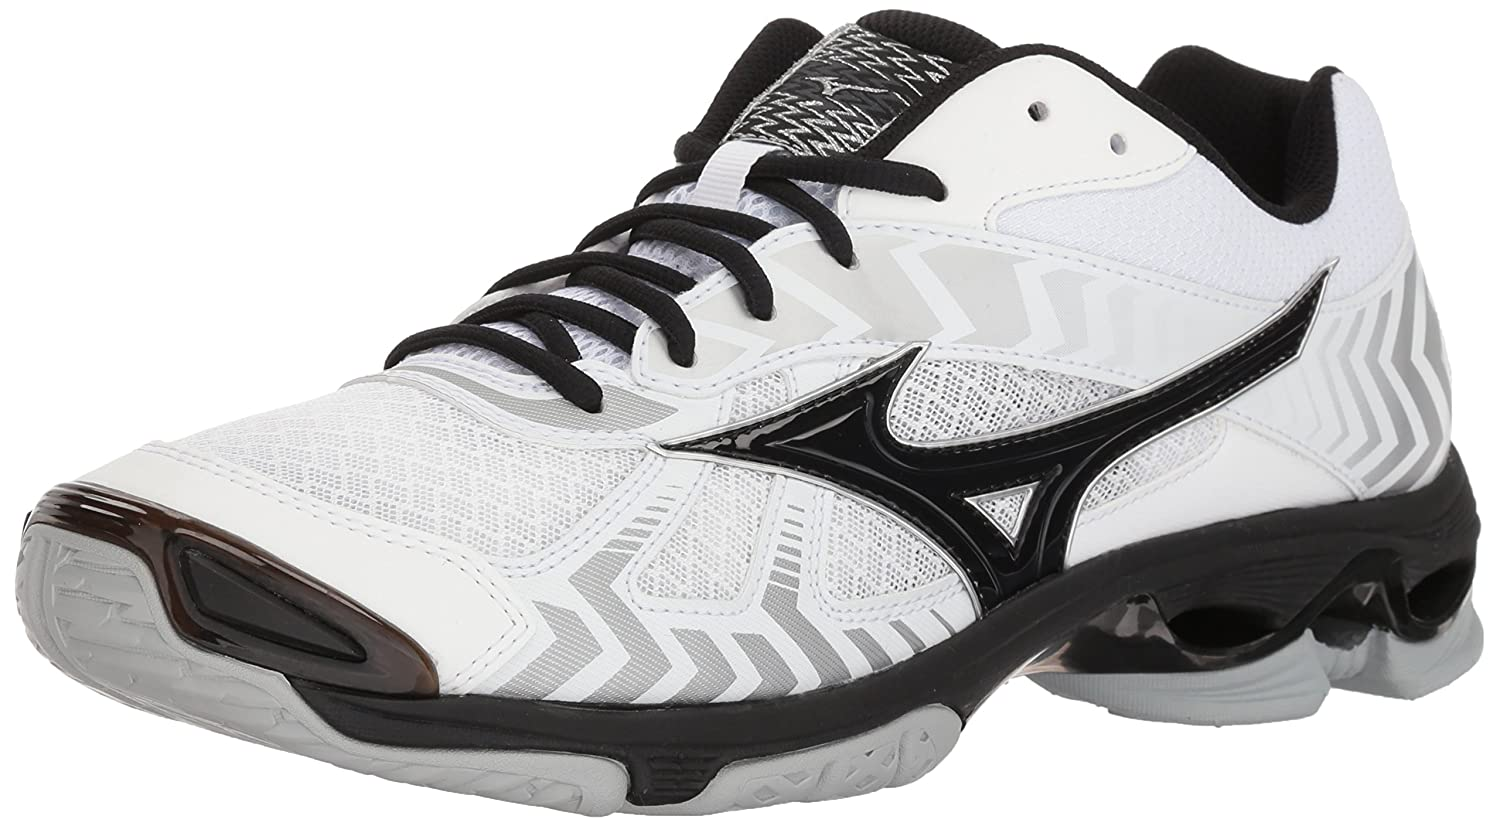 Mizuno Men's Wave Bolt 7 Volleyball Shoes